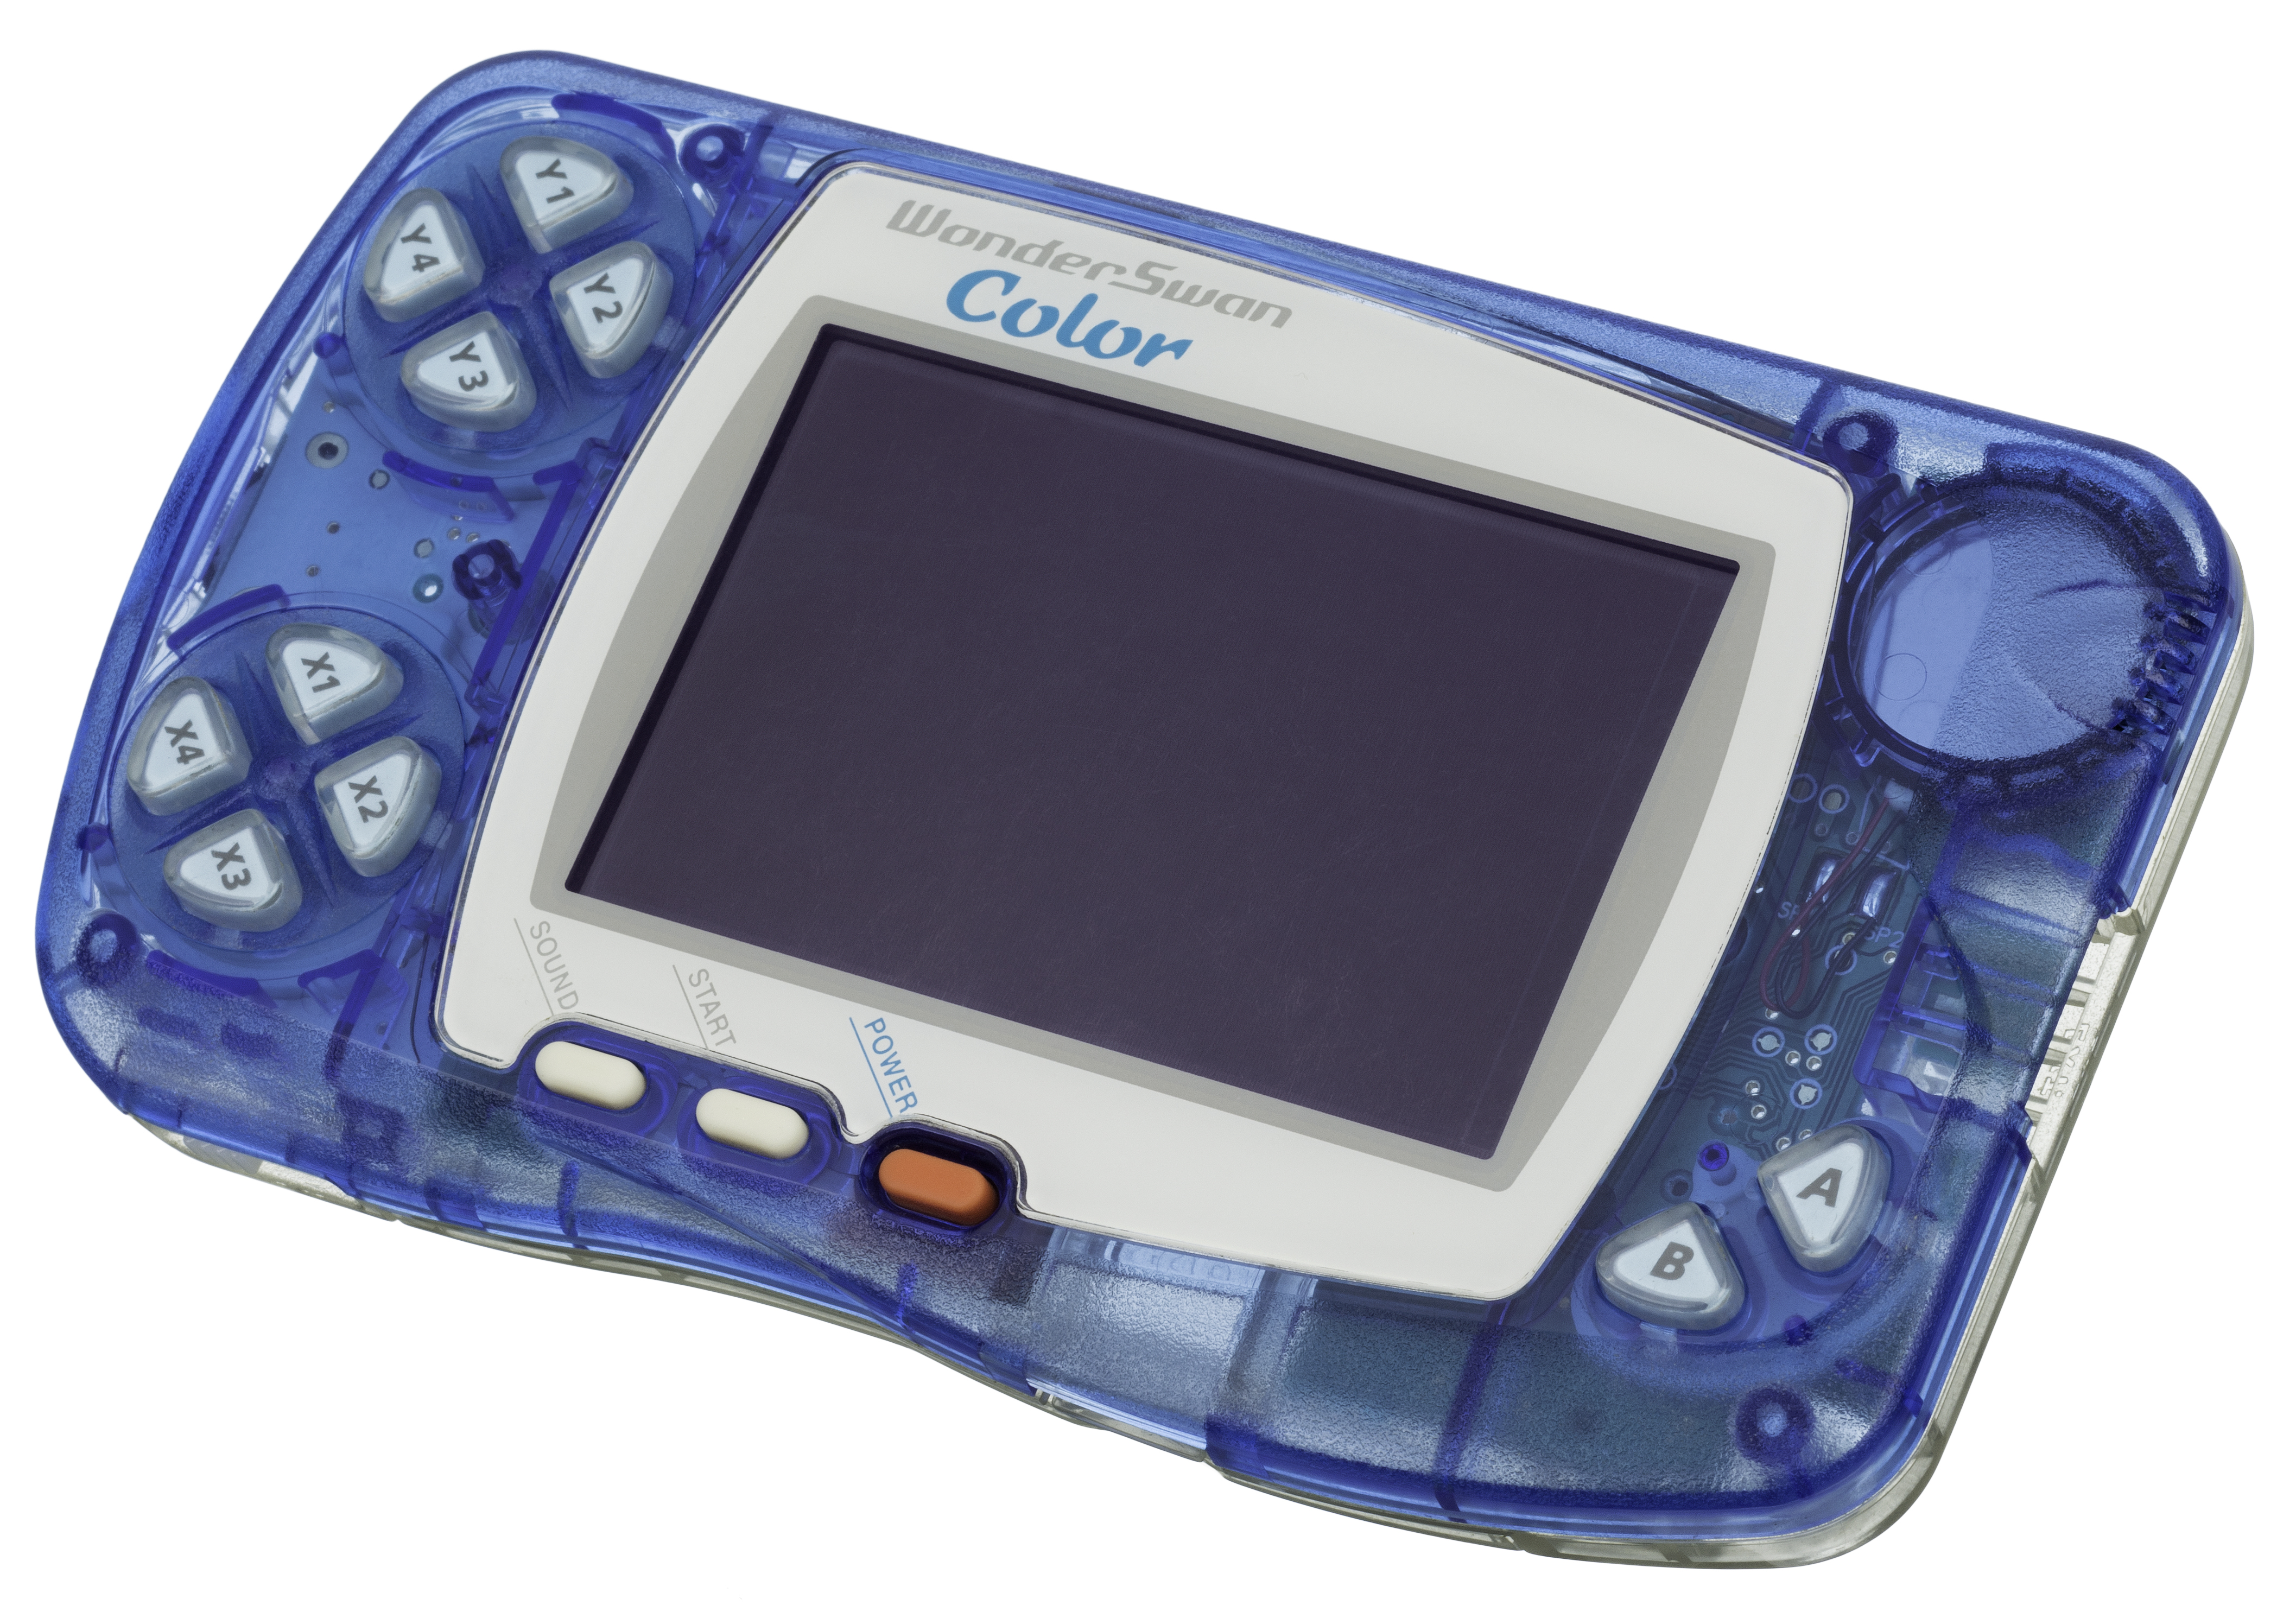 Wonderswan Color[edit]